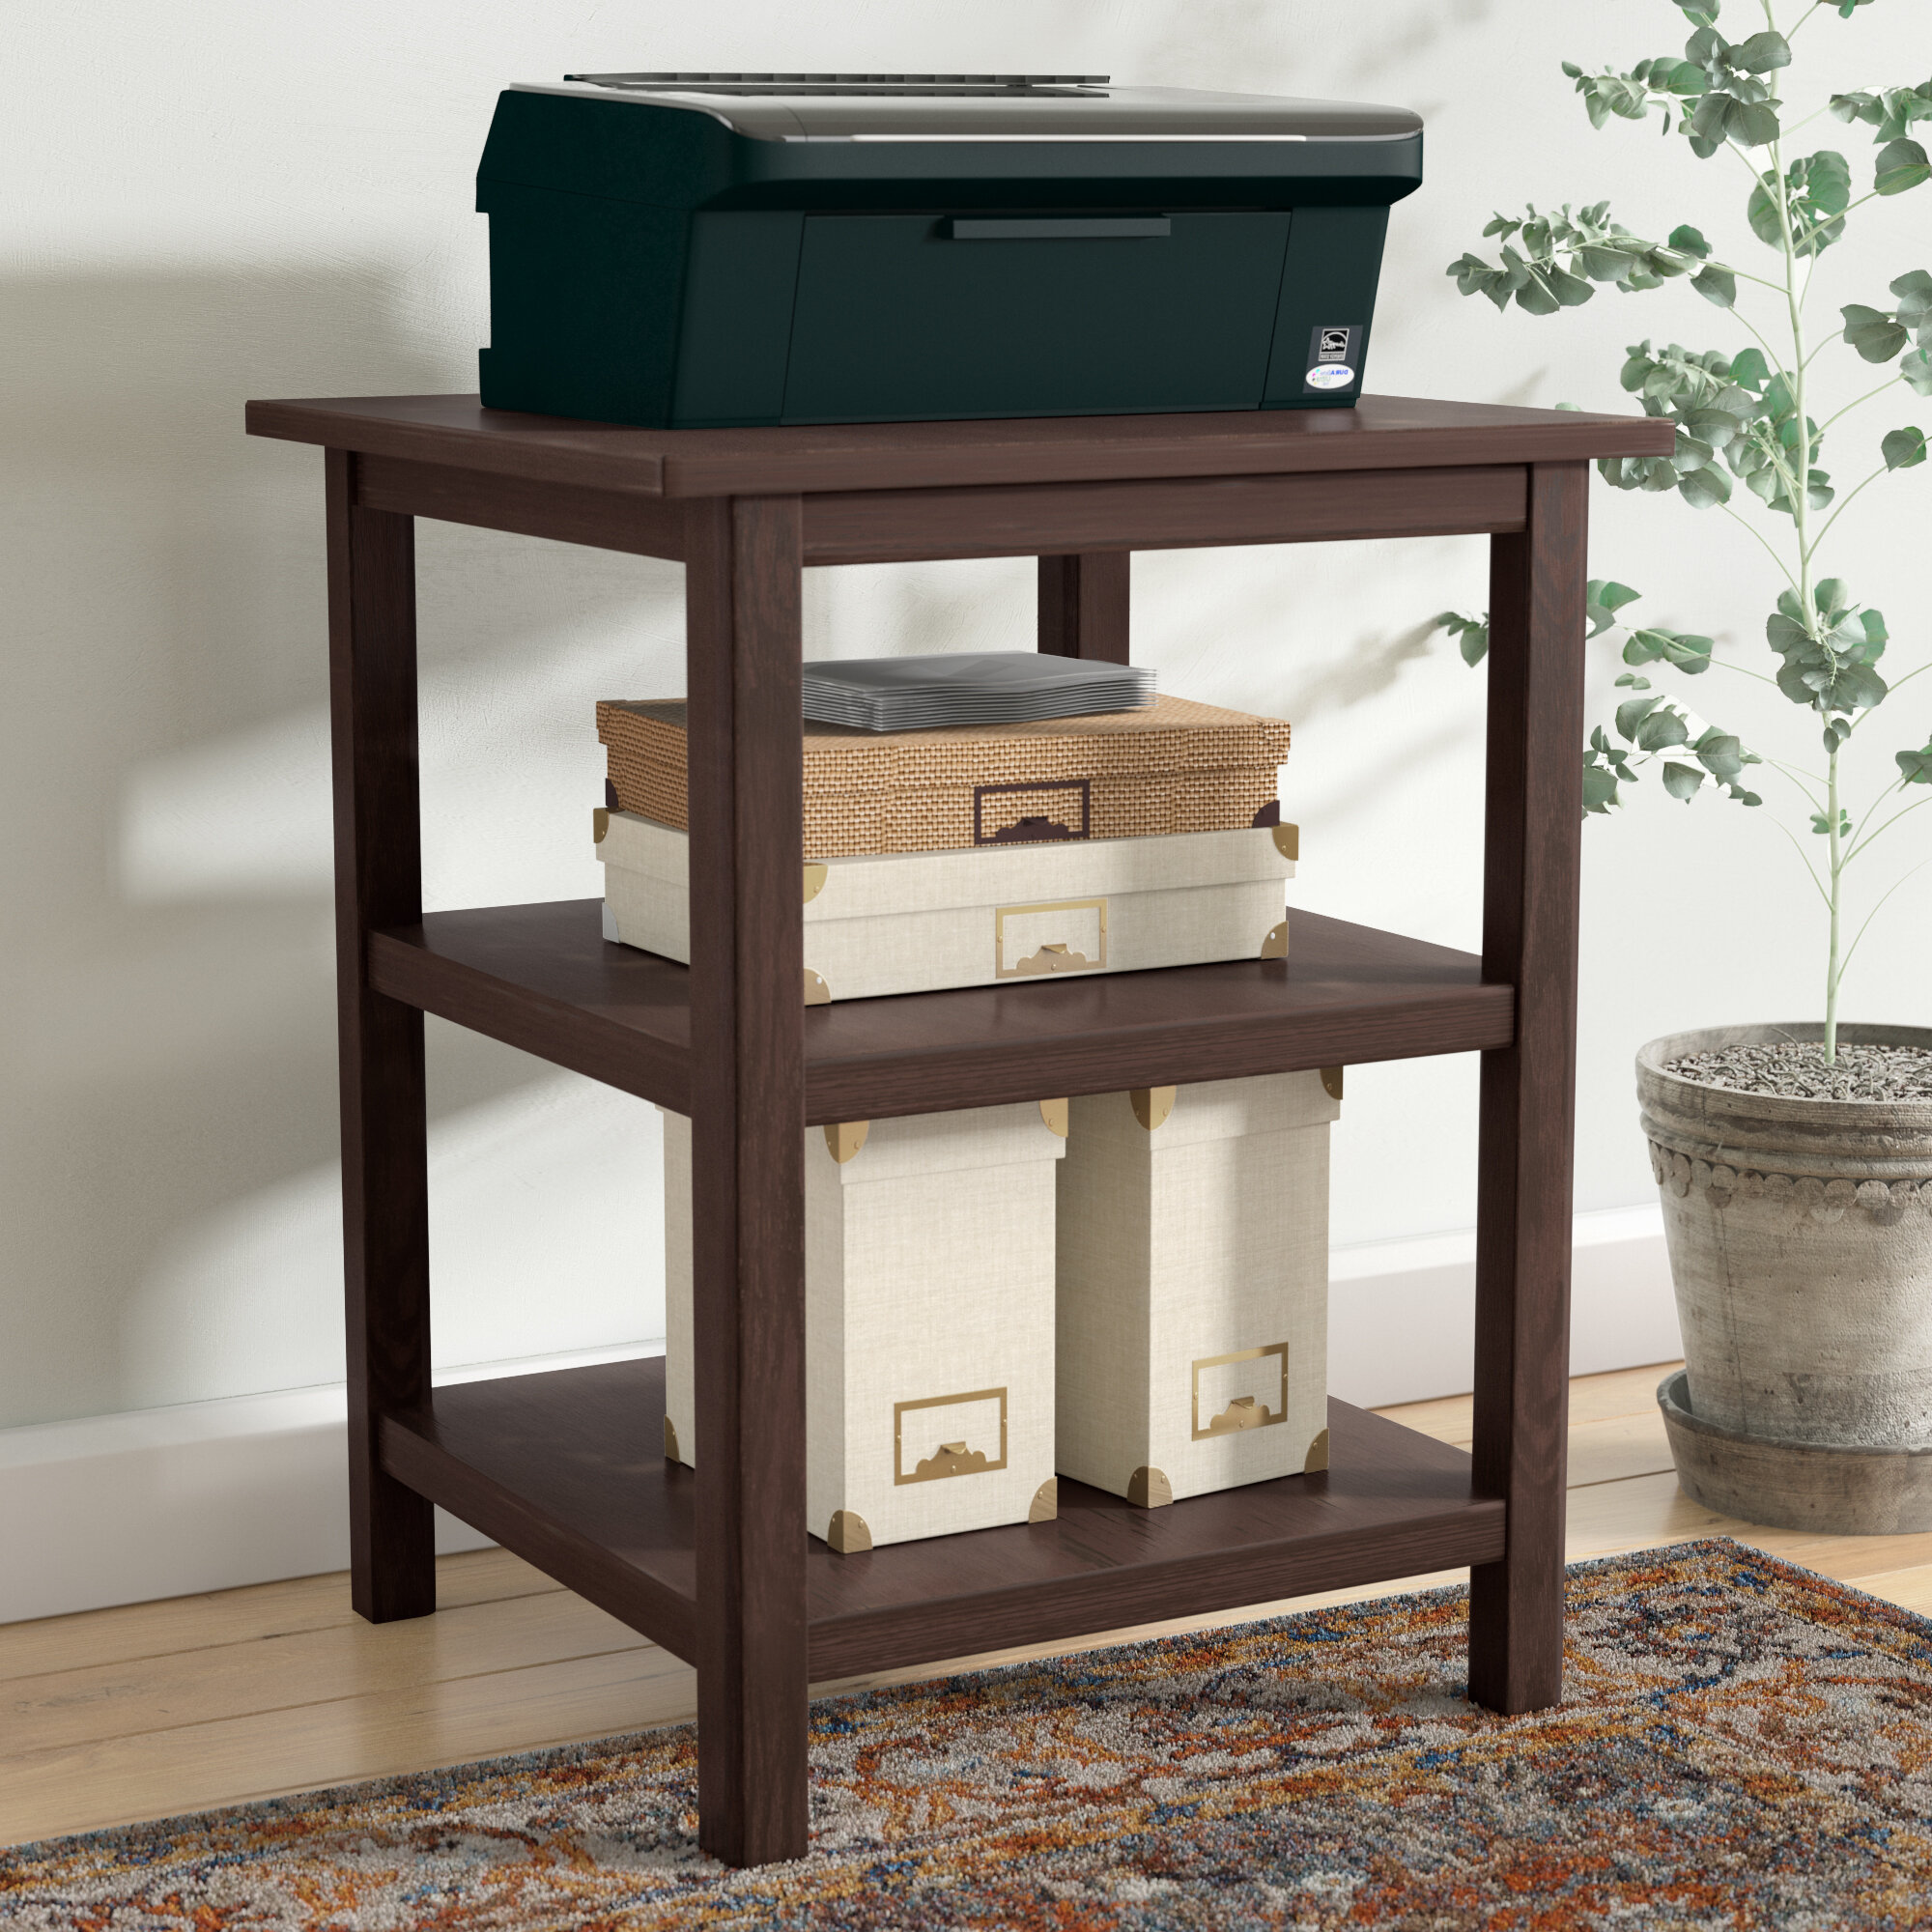 Darby Home Co Boonville Printer Stand